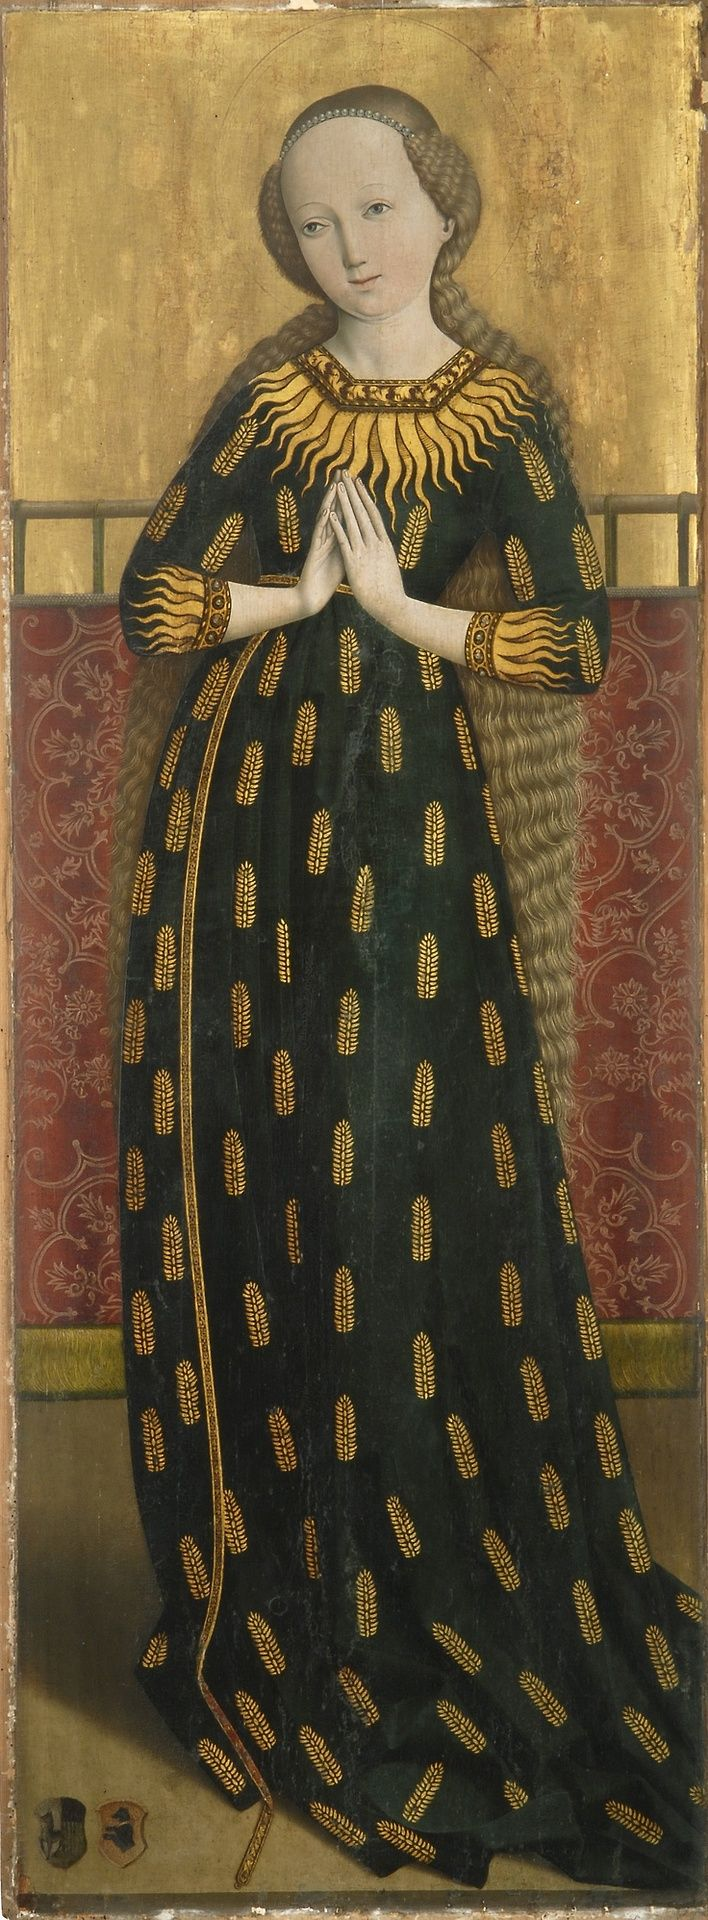 """aria im Ährenkleid"""" or """"Madonna of the Ears"""", c. 1490 Salzburg, Austria  Madonna of Ears, Salzburg, ca 1490, anonymous. 'Madonna of Ears' is a type of depiction of Mary in a dress decorated with golden wheat ears """"as the fertile soil and untilled field of God called to bear fruit, a symbol for her virginal motherhood ."""